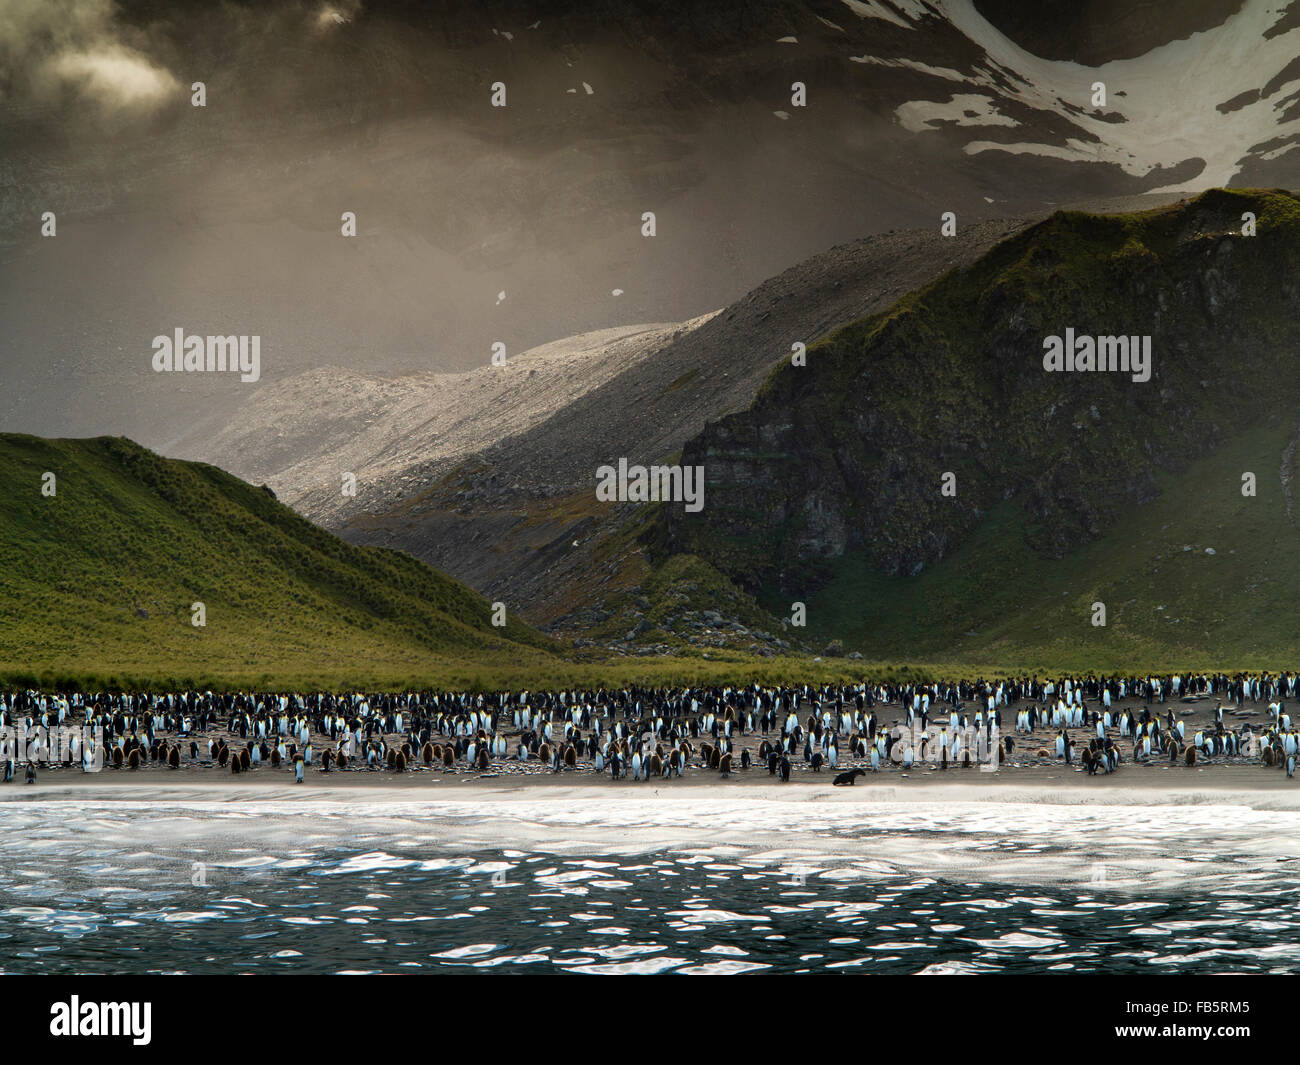 South Georgia, Gold Harbour, King Penguins on beach - Stock Image